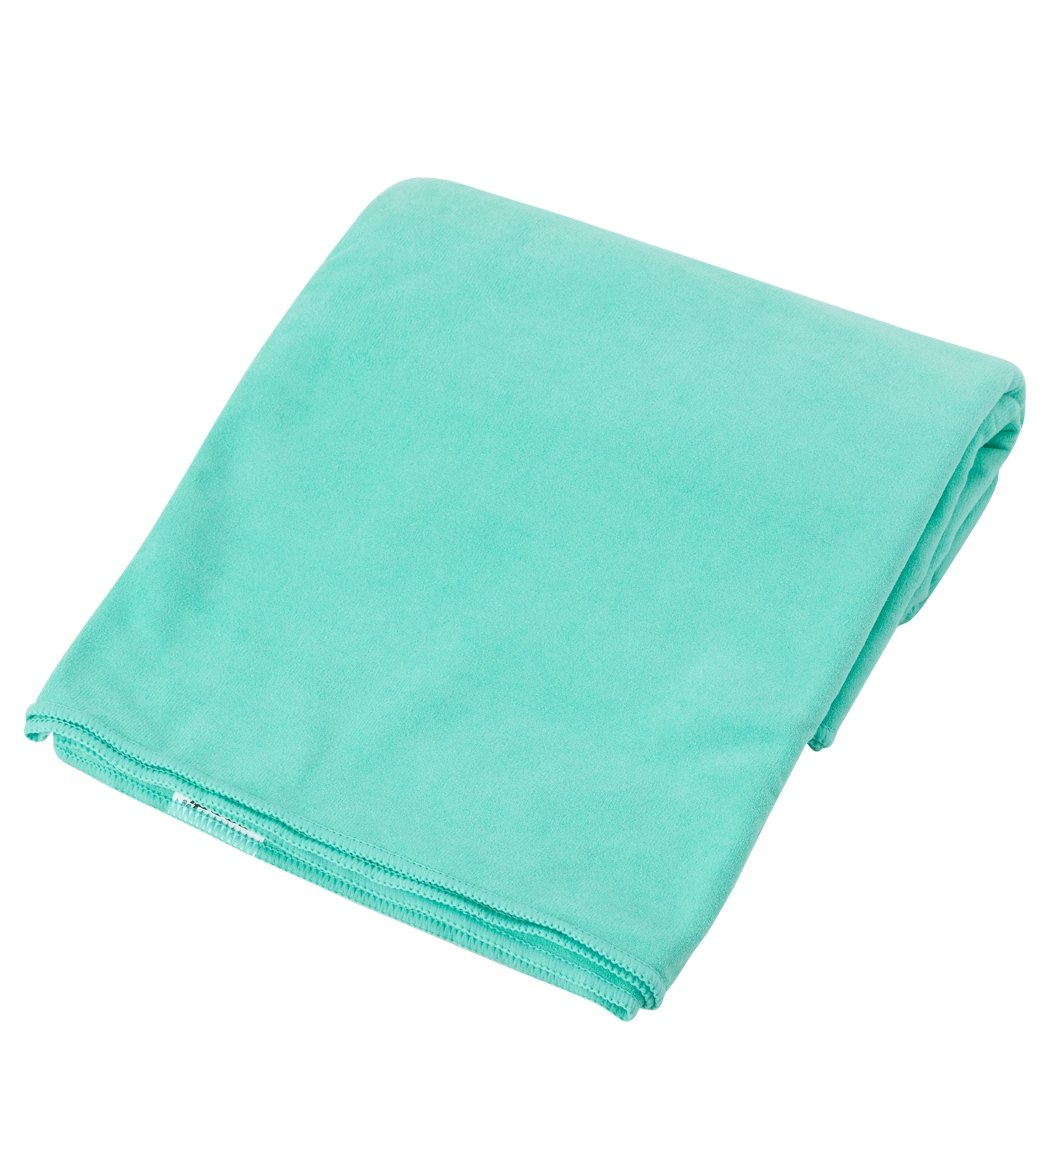 Everyday Yoga Microfiber Mat Towel At Swimoutlet Com